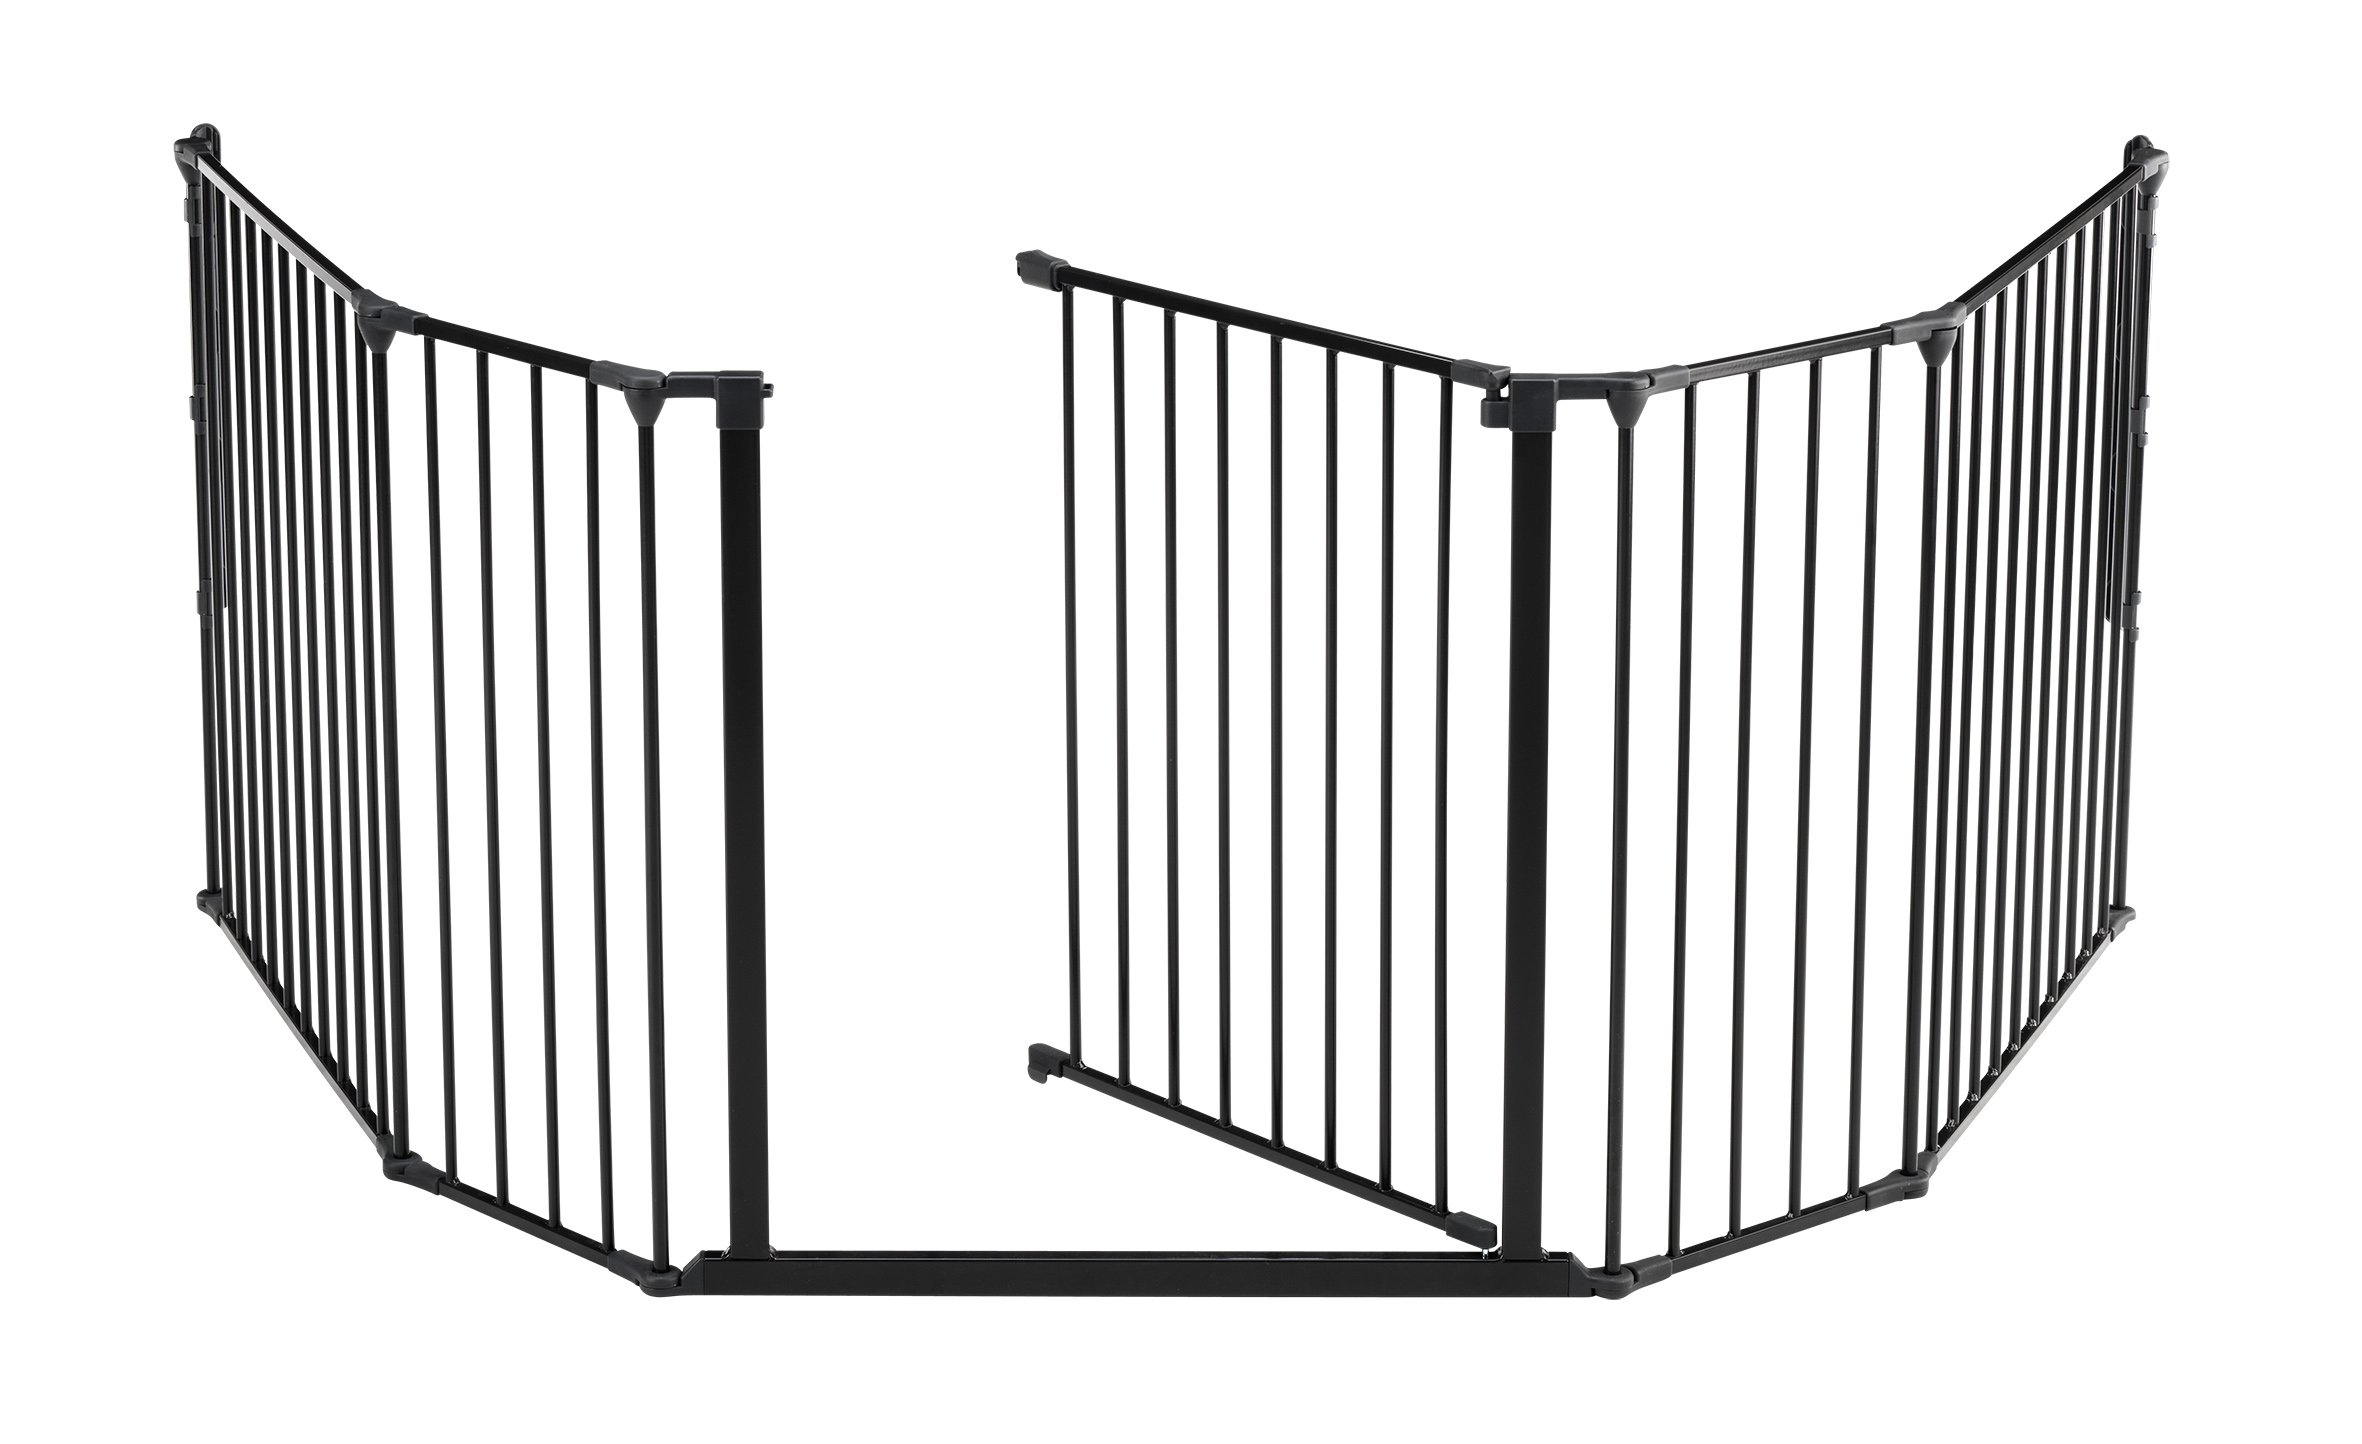 BabyDan Hearth Gate/Room Divider (Extra Large, 90-278cm, Anthracite)  Only configure system fulfilling newest european safety standard Multi purpose hearth gate and room divider There are 5 panels in total, 1 larger 72cm gate section panel, 2 larger 72cm panels and 2 smaller 33cm side panels. For shipping purposes, the 2 smaller side panels are connected by the interlocking pole 3